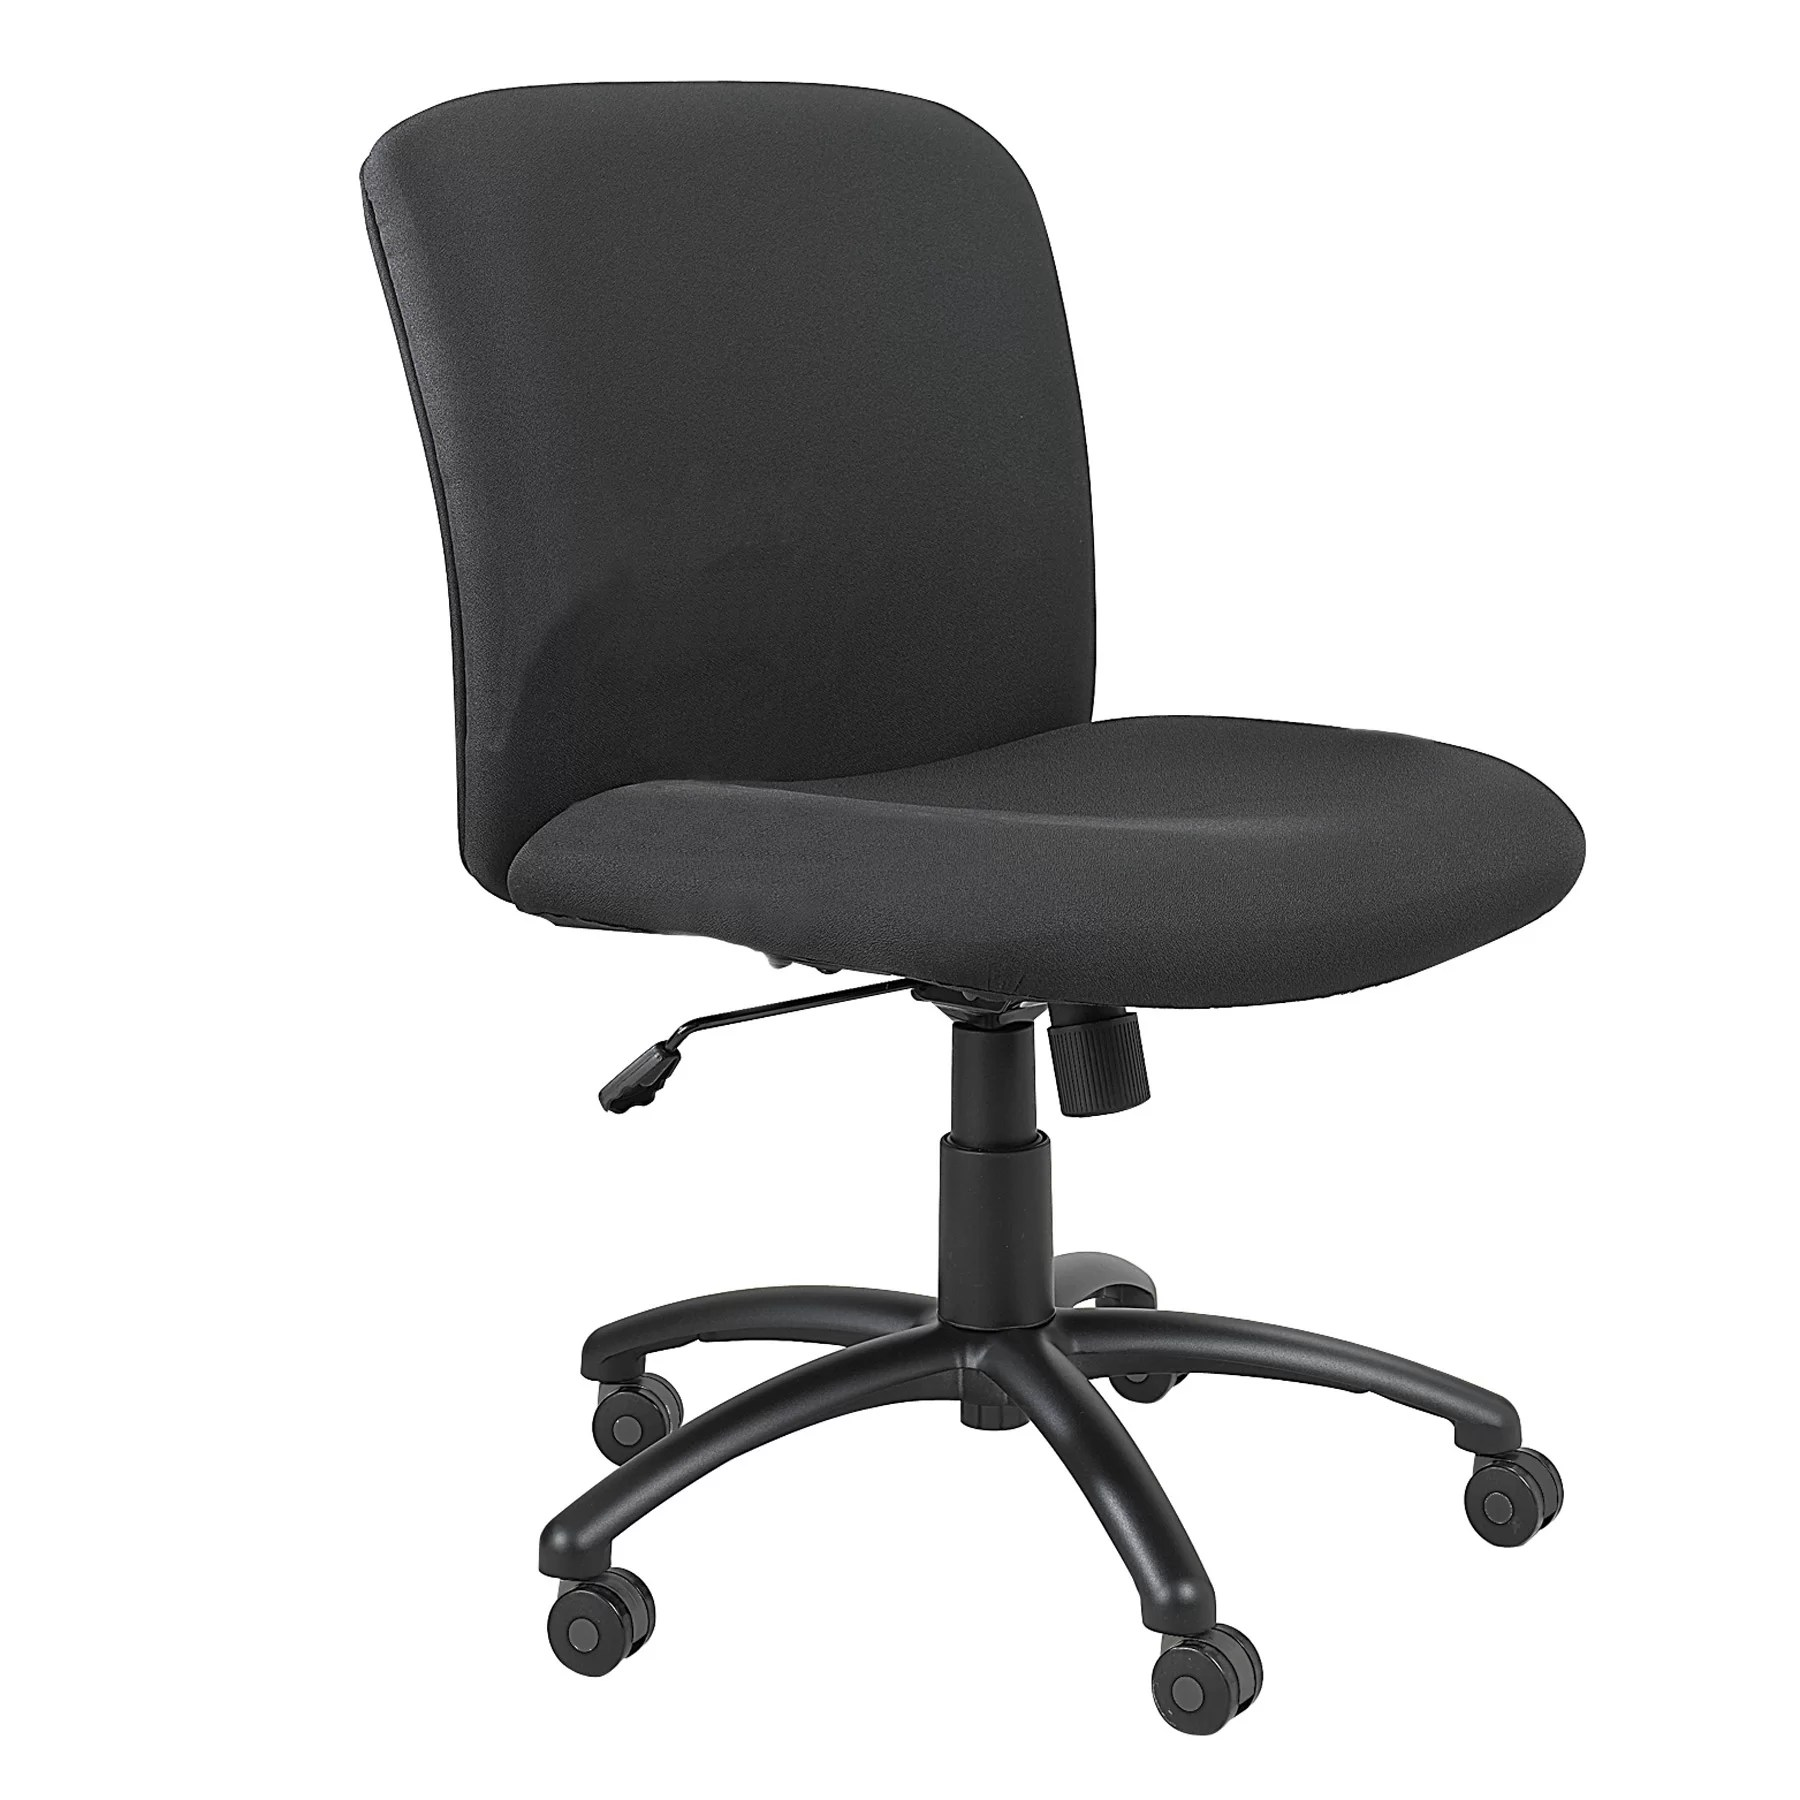 mesh task chair outdoor pod safco products vue intensive use polyester seat reviews wayfair